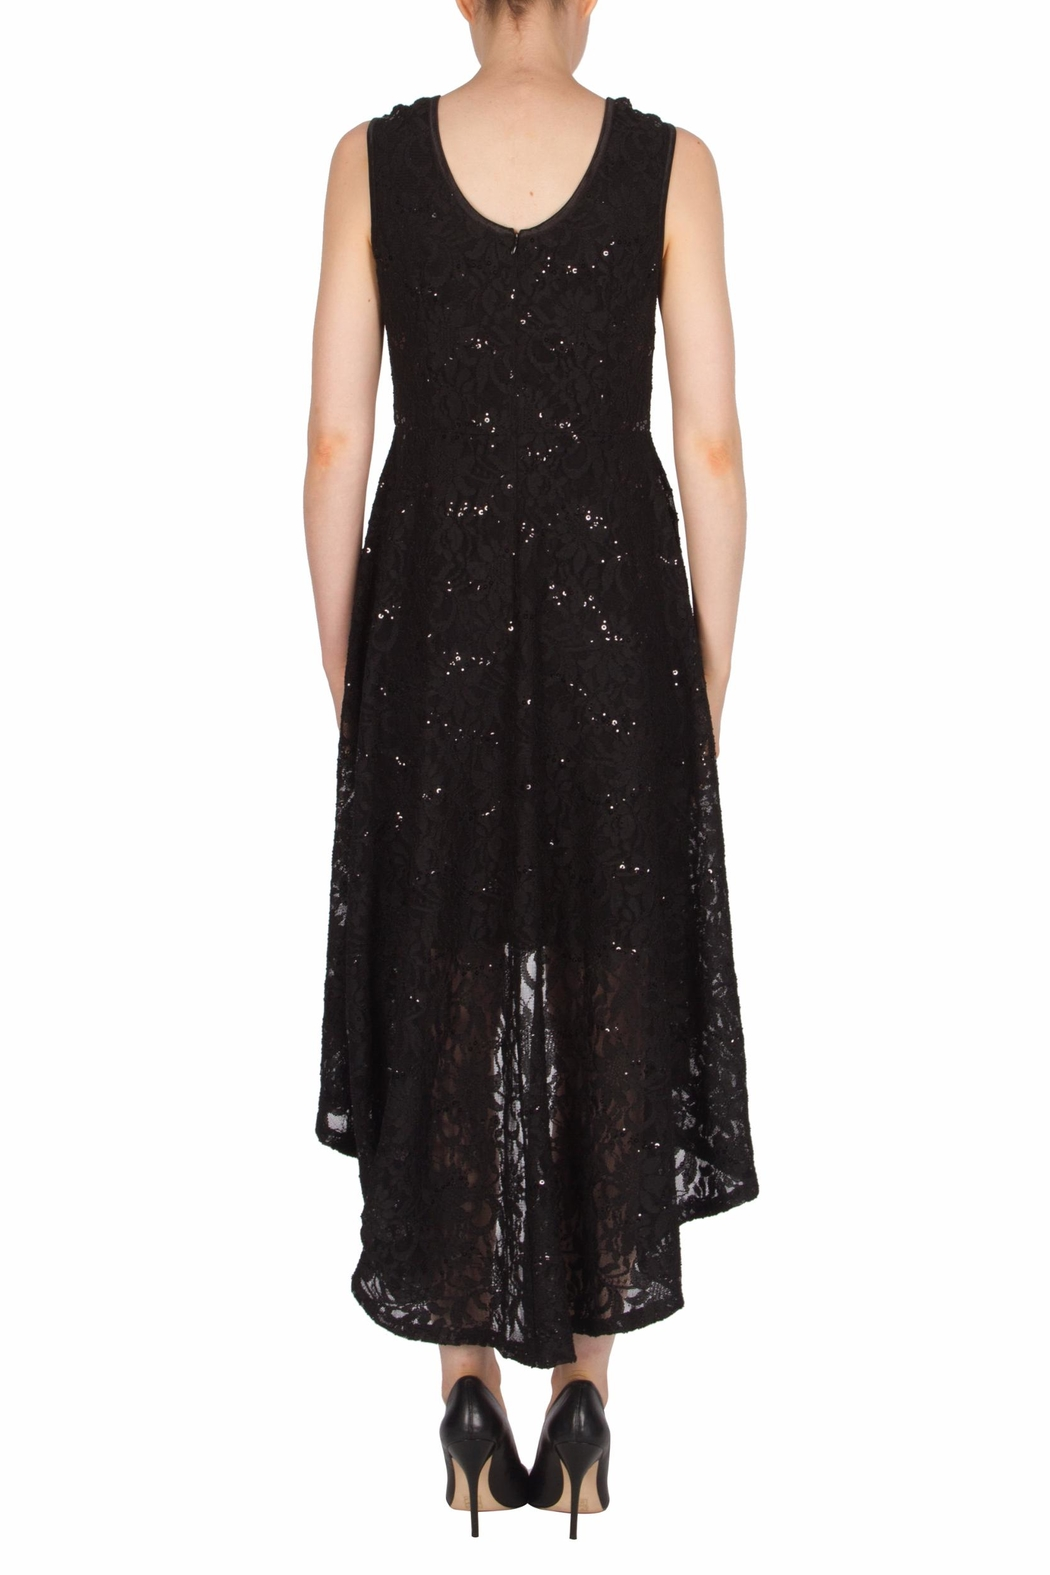 Joseph Ribkoff High Low Lace Dress from Canada by Chez Therese ...